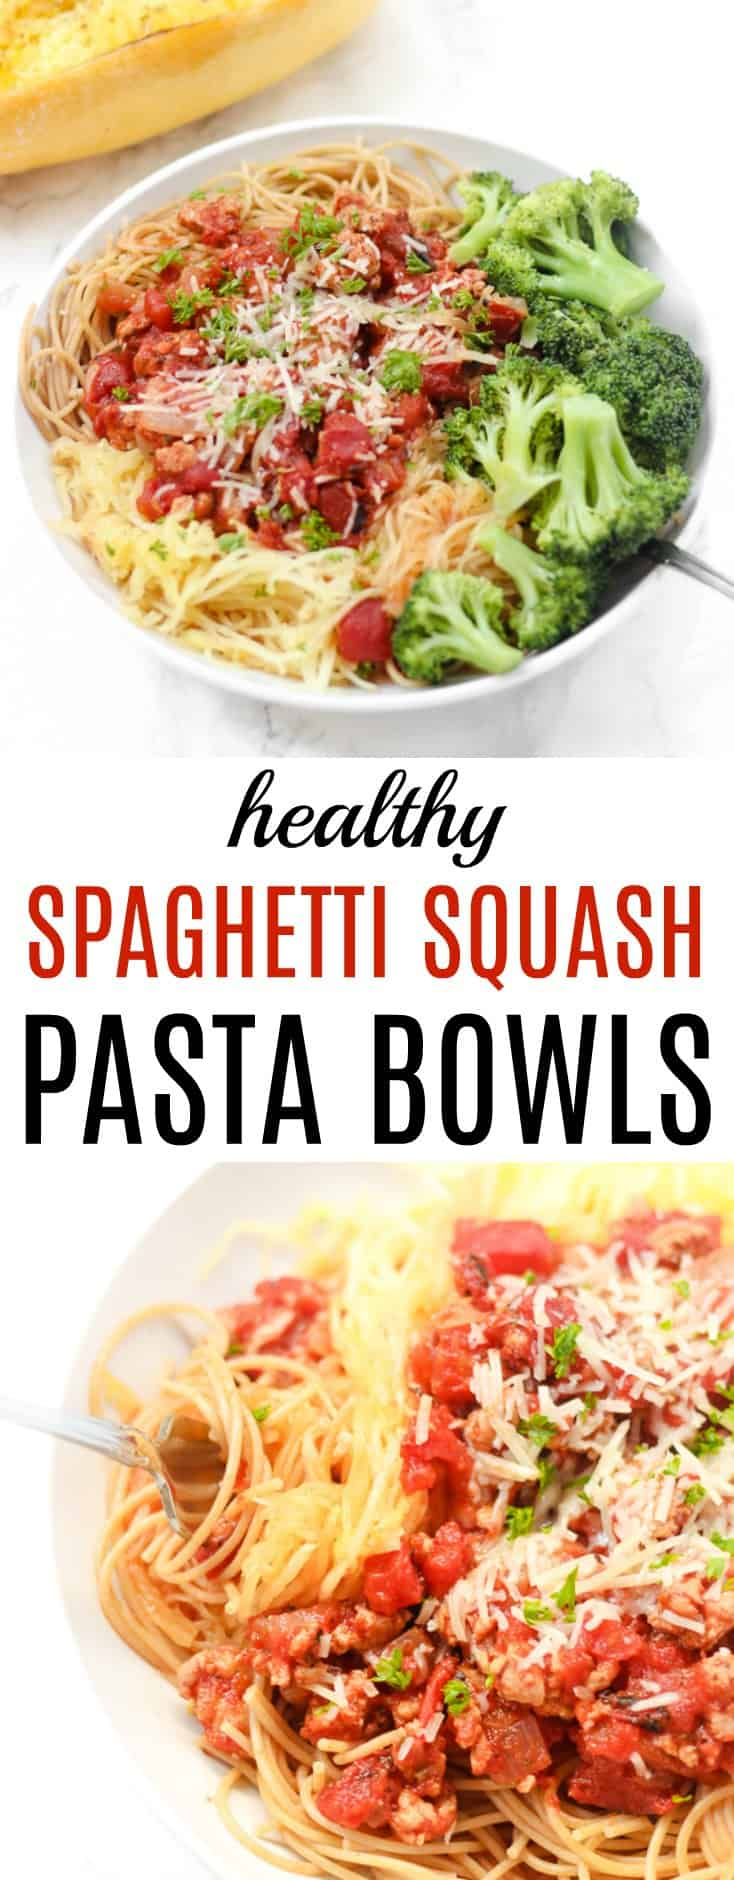 Spaghetti Squash Pasta Bowls are a healthy way to enjoy a giant bowl of noodles!